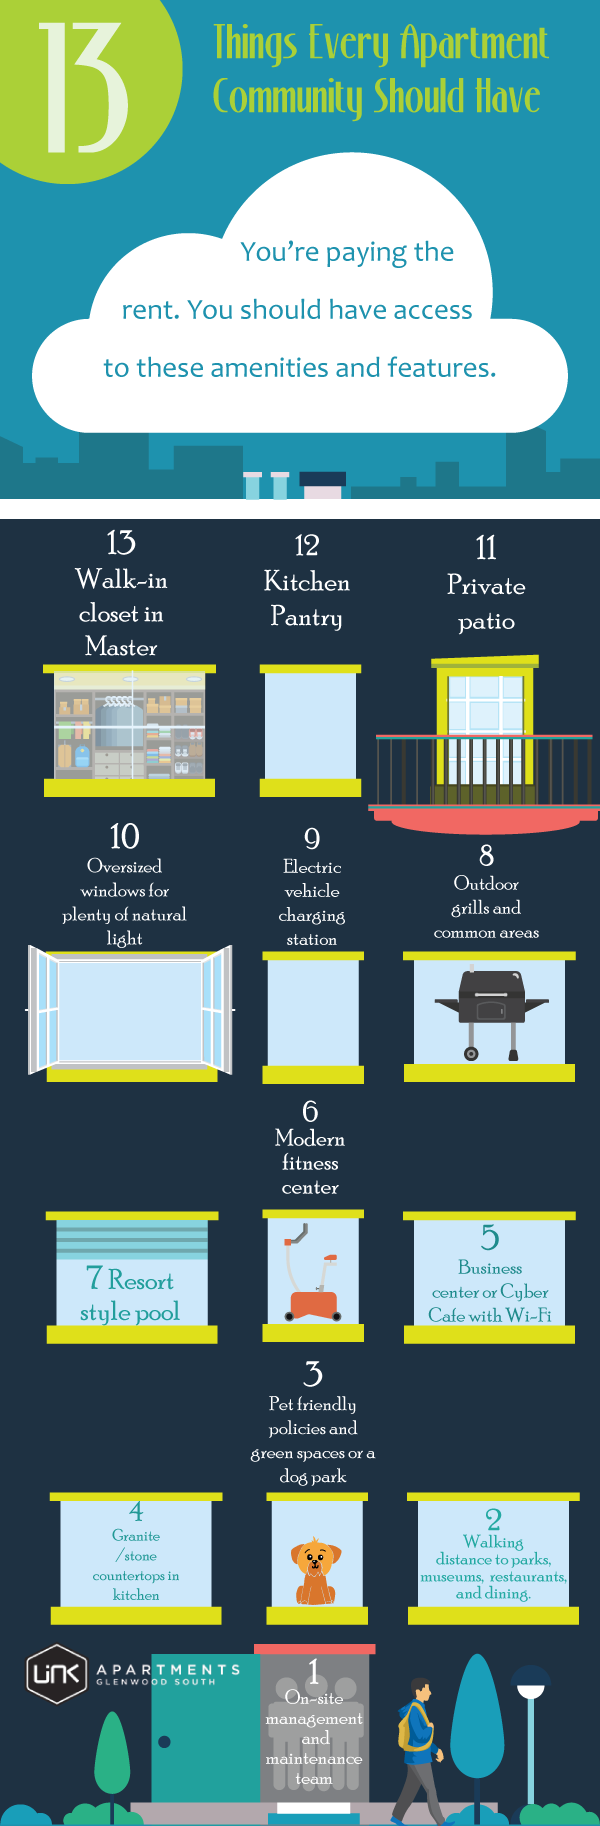 Popular Apartment Amenities Glenwood Infographic